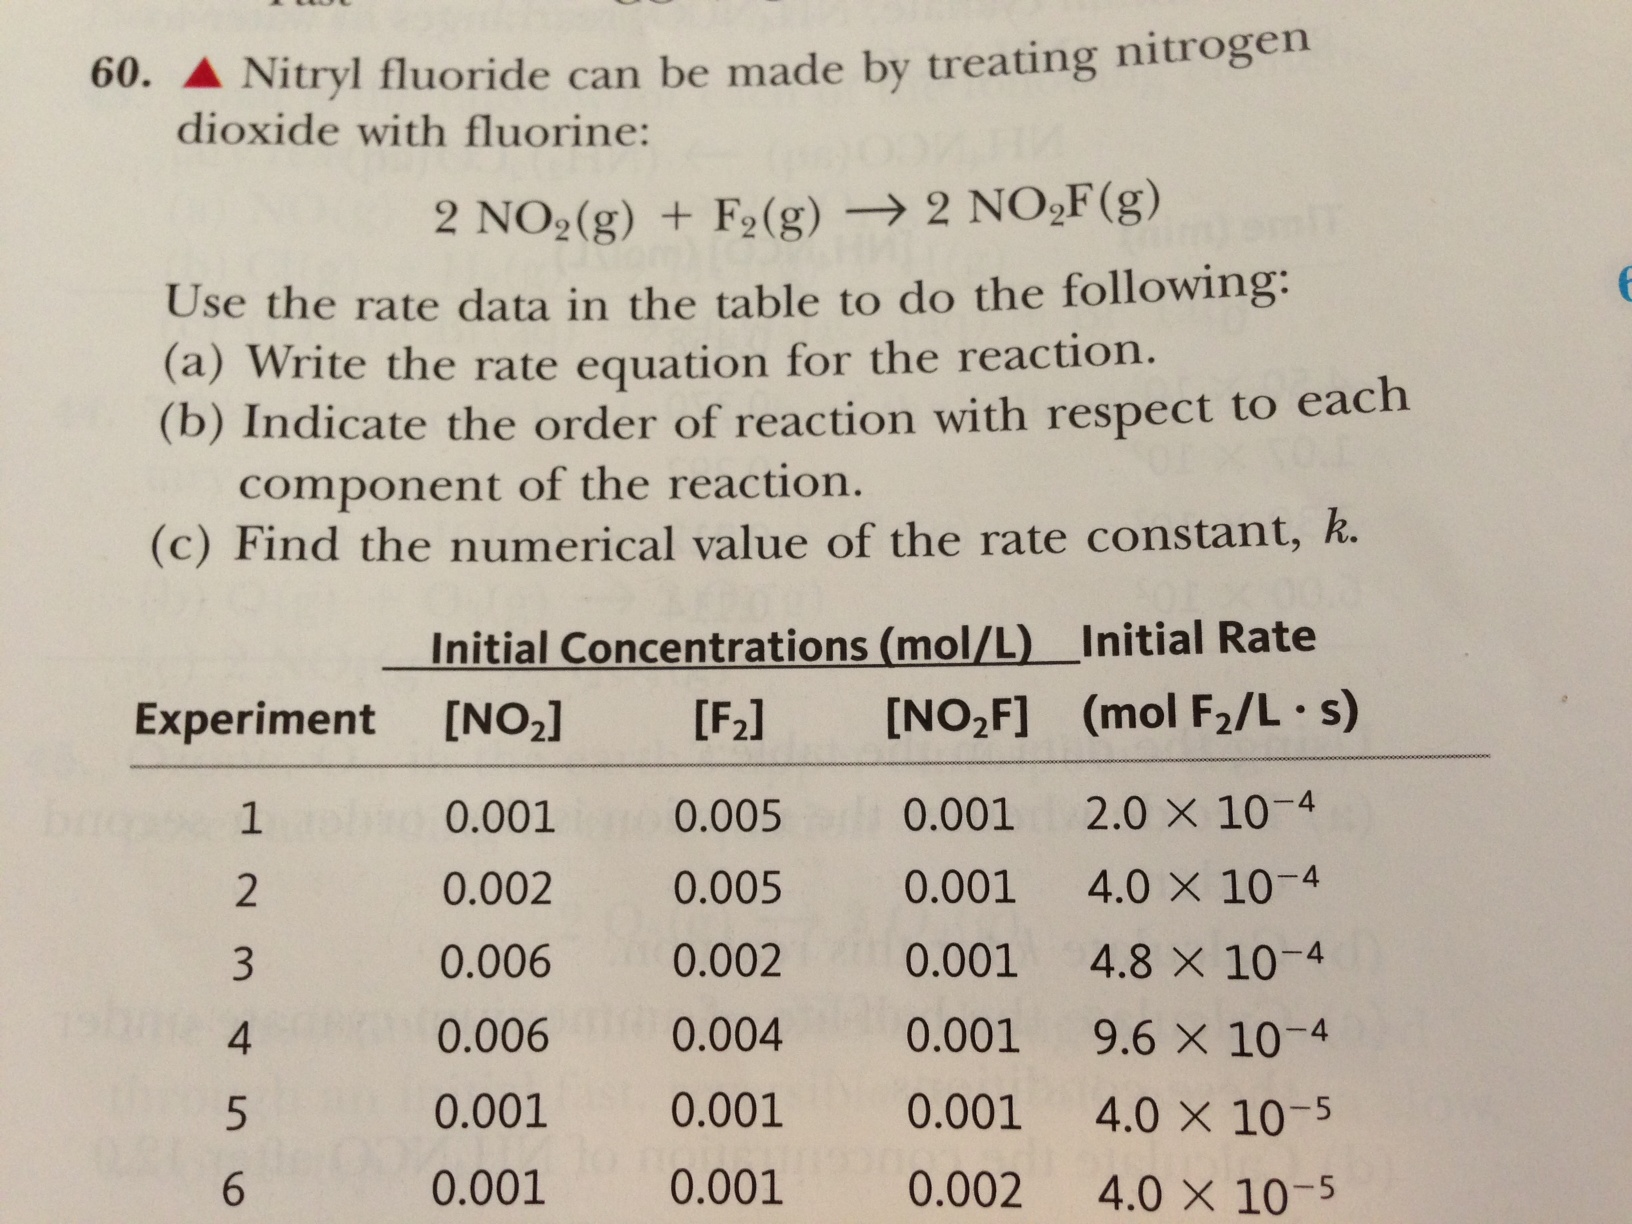 Nitryl fluoride can be made by treating nitrogen